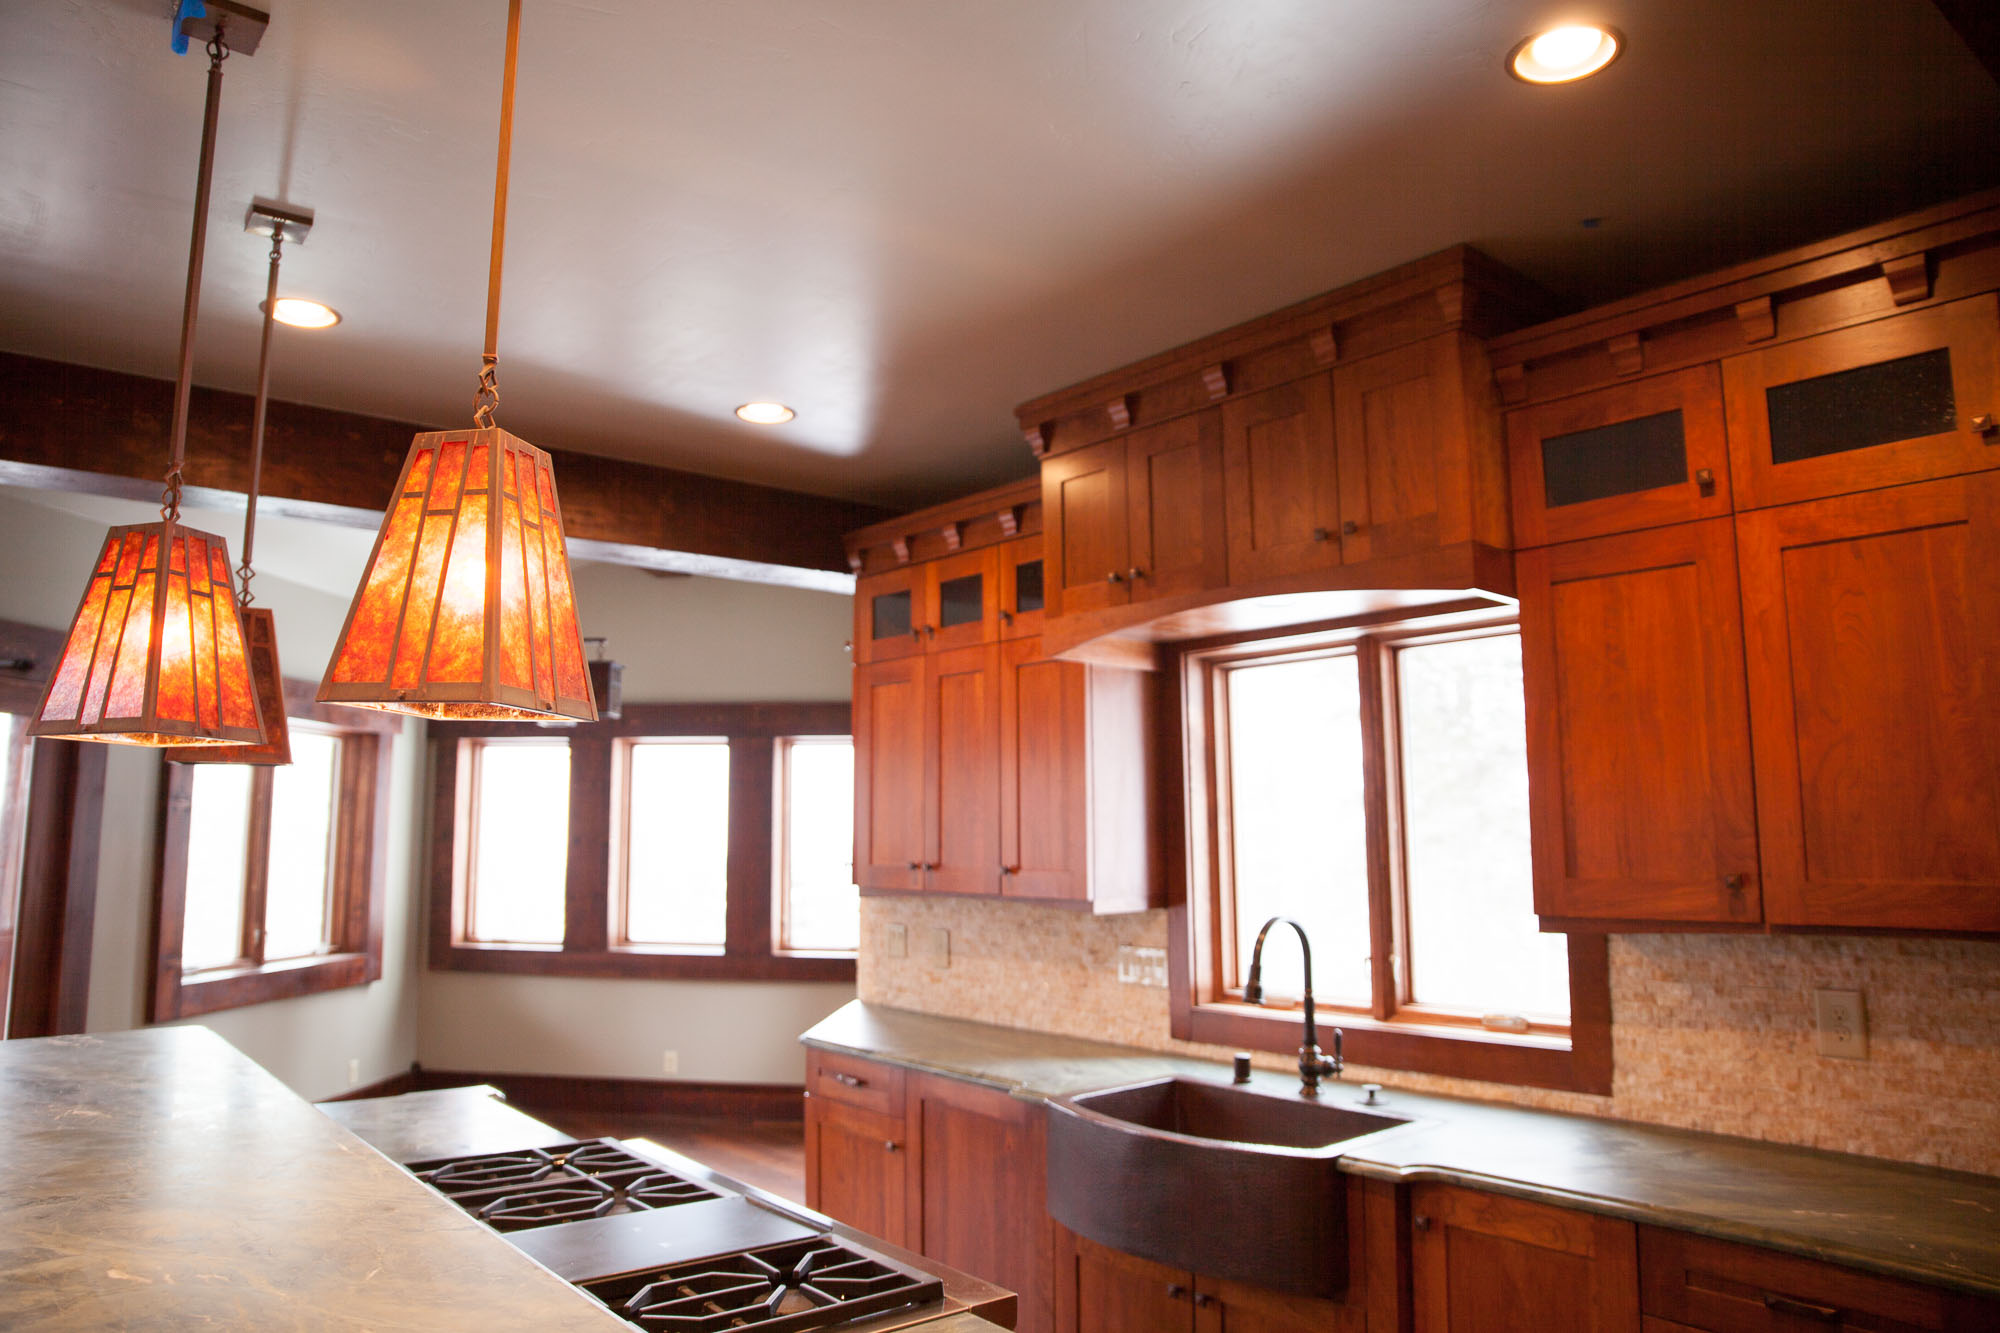 Custom Arts & Crafts style cabinets, granite kitchen counters, amber mica light fixtures.